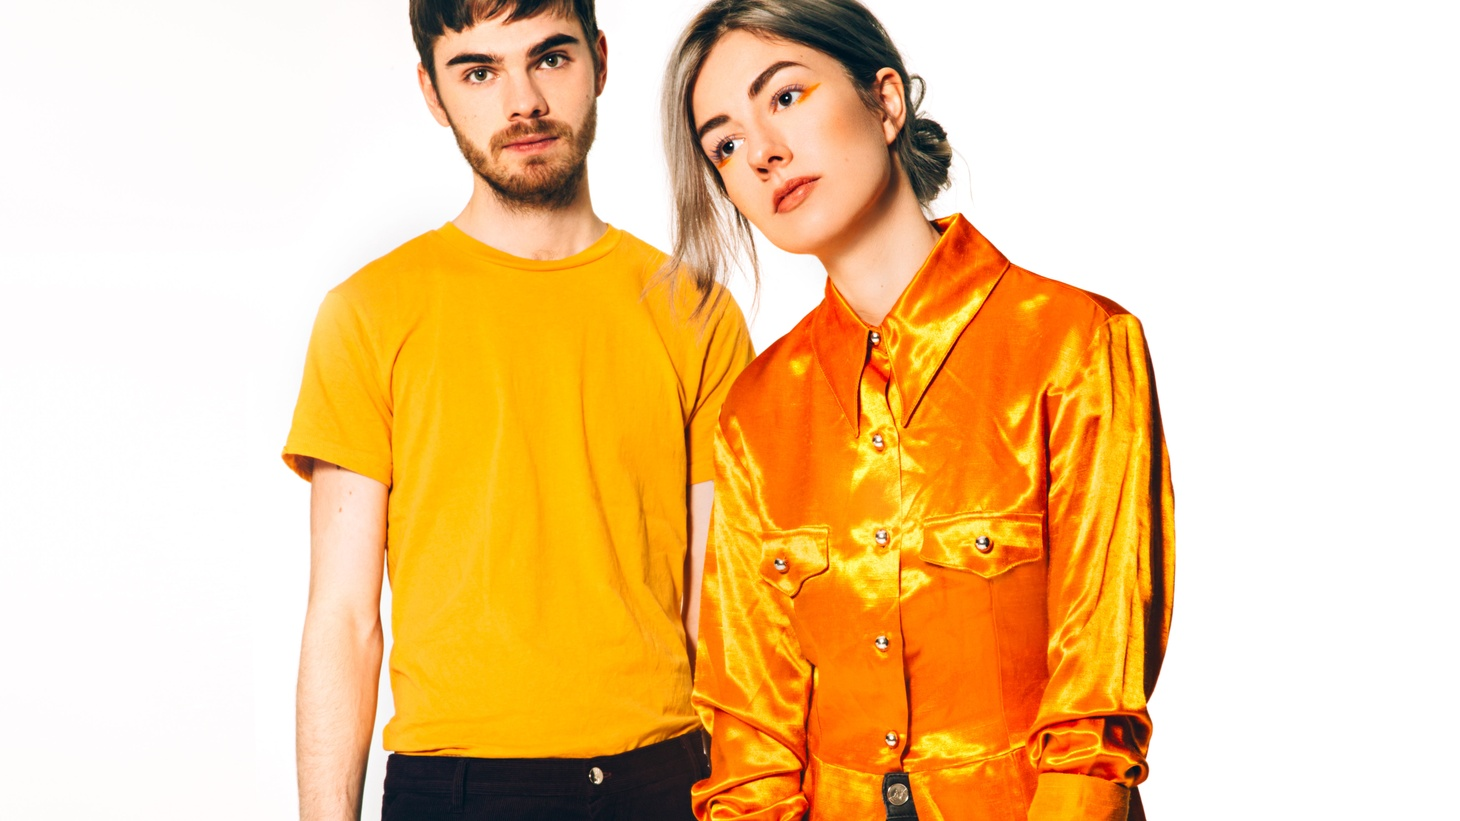 """Experimenting with layers of sound, Austrian duo  Leyya  offer an offbeat mix of indie rock and electronica. Wistful vocals and strains of sitar float by on """"Zoo."""""""